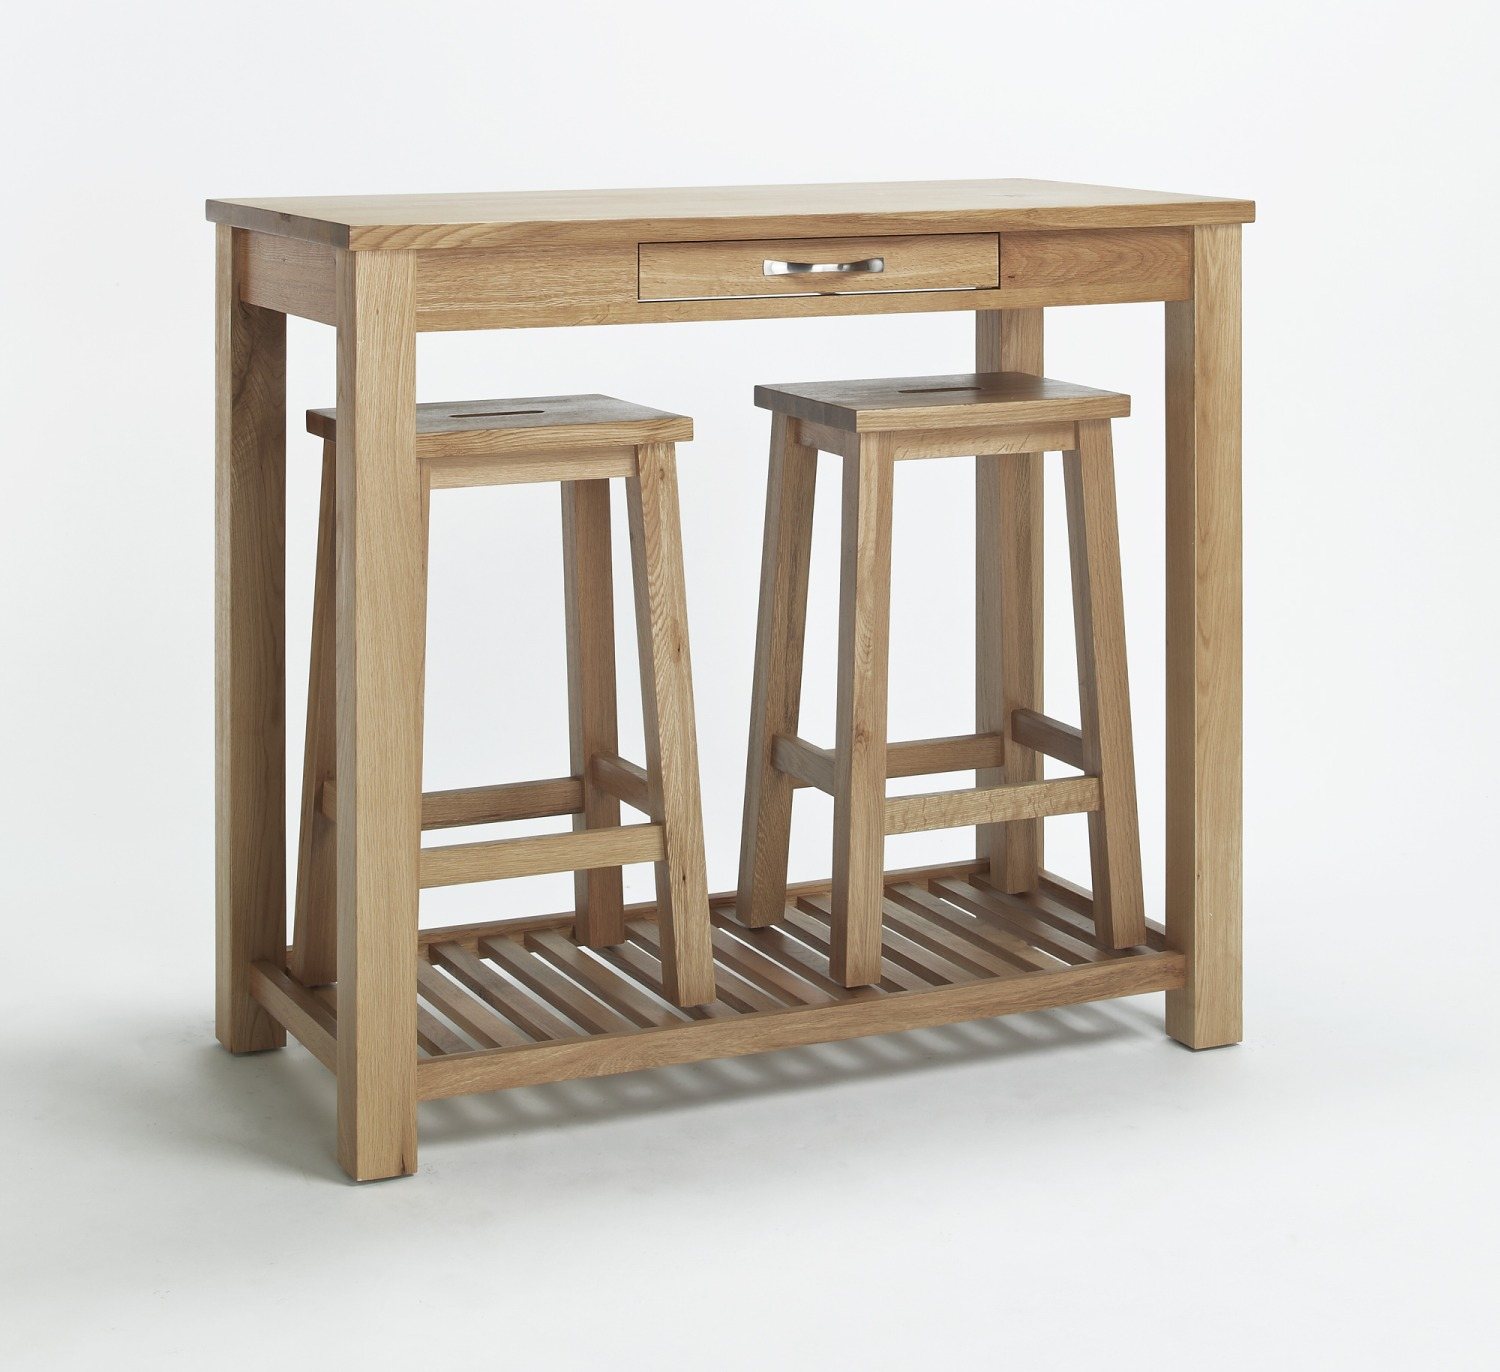 Compton Solid Oak Kitchen Furniture Breakfast Dining Table